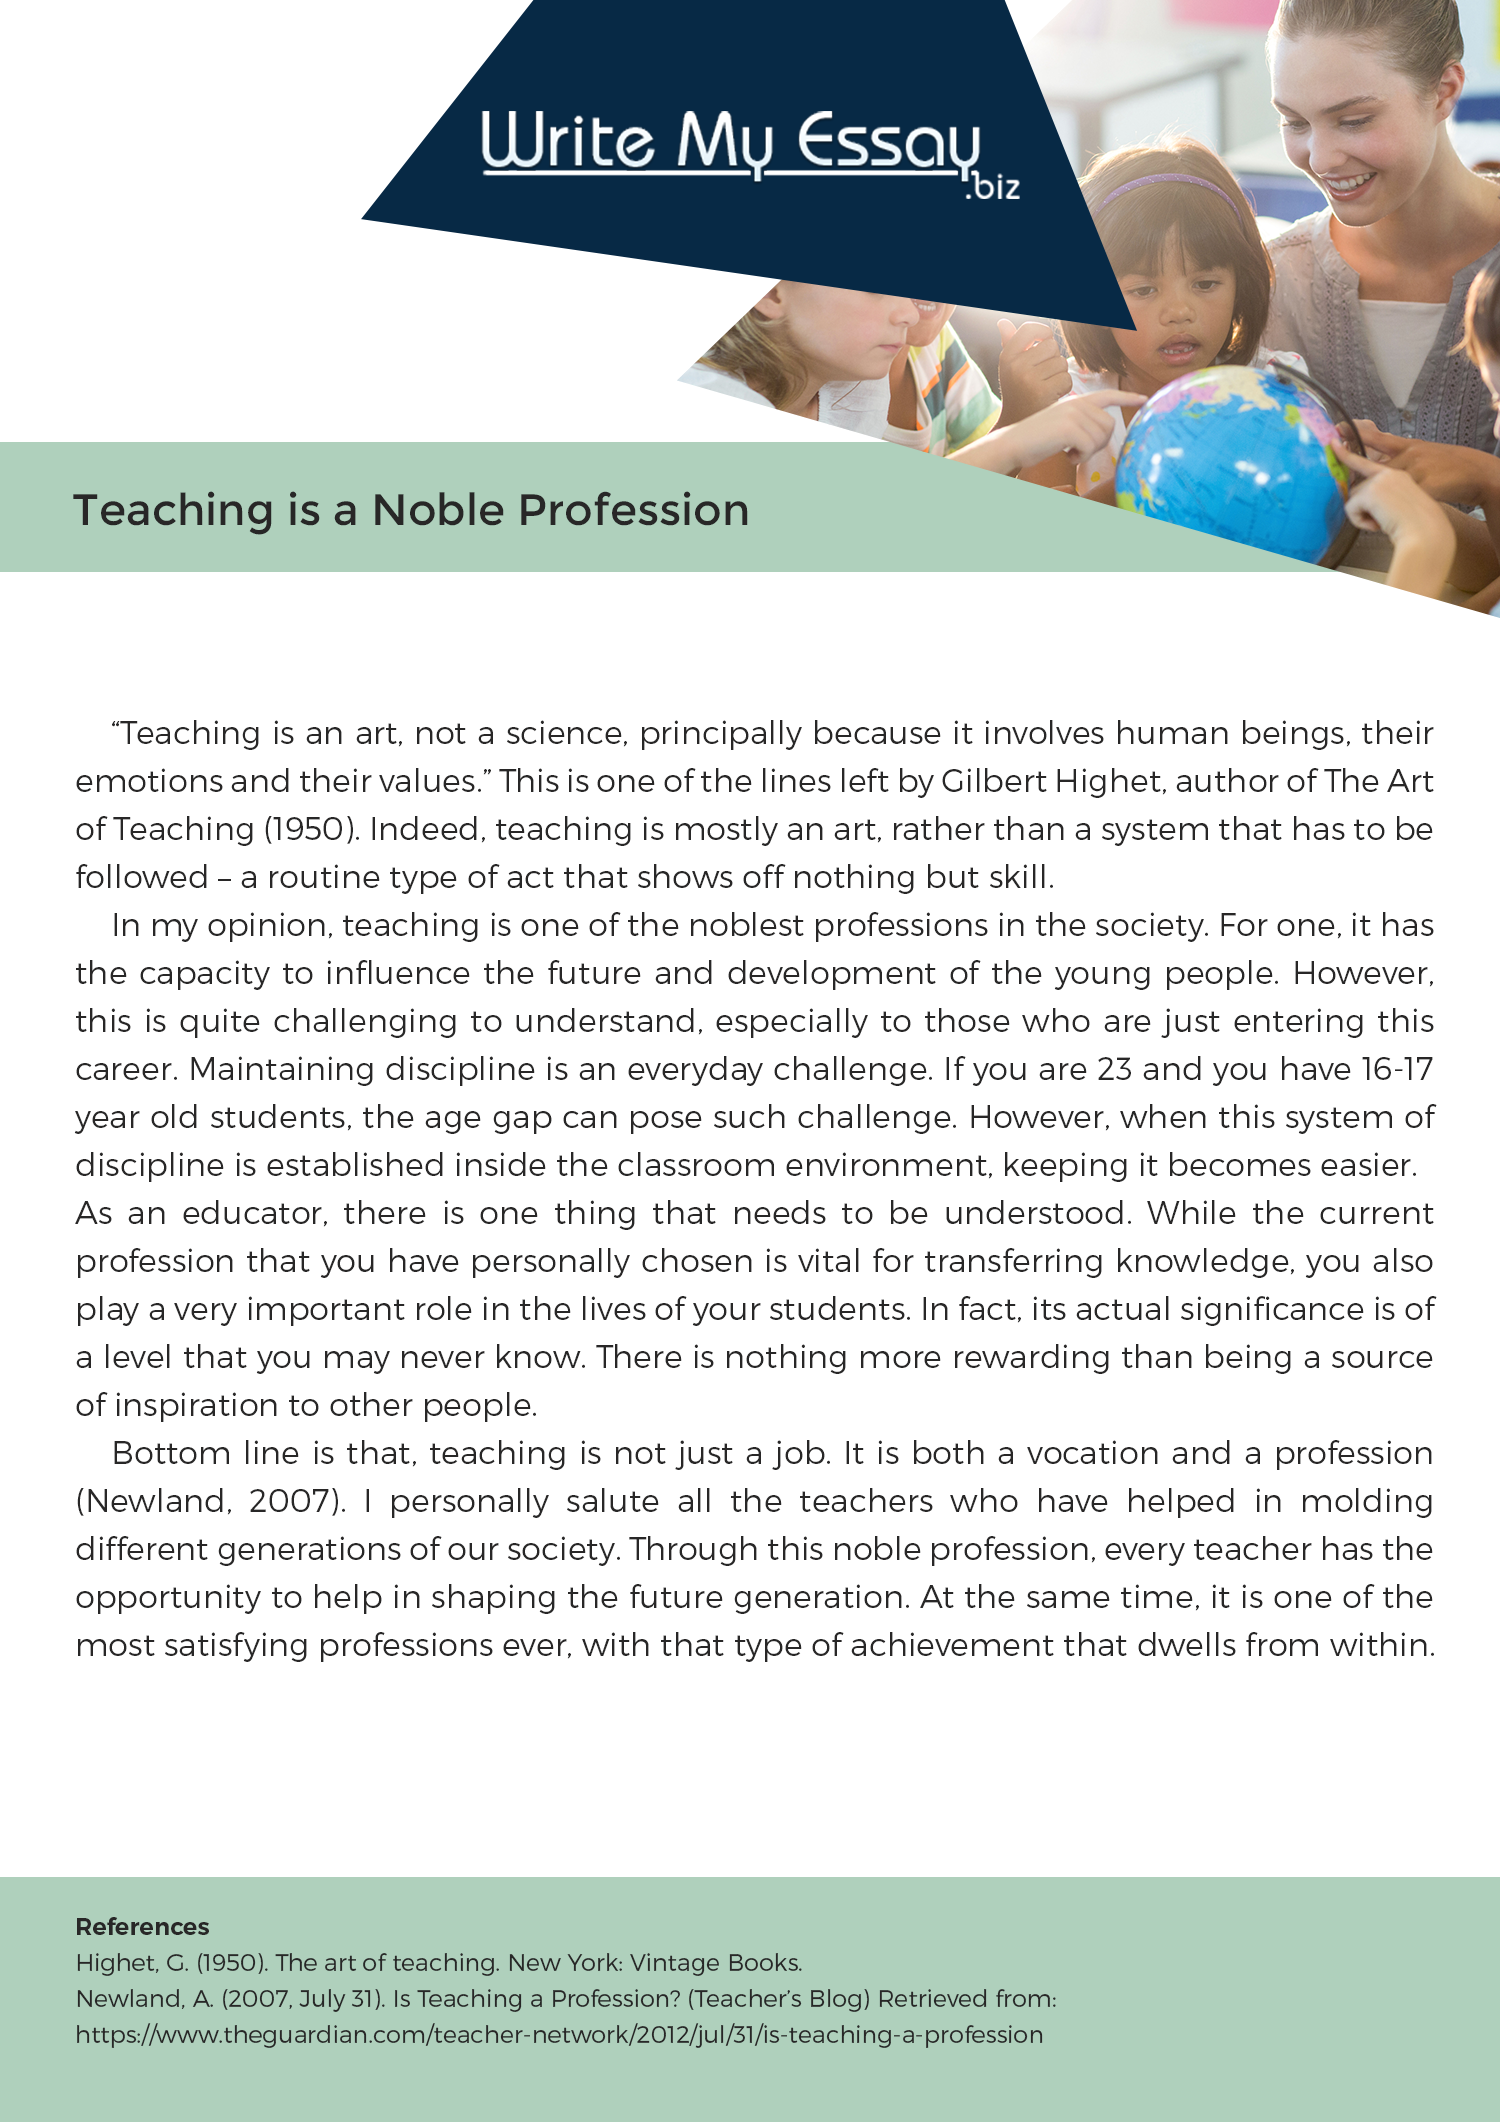 Teaching Noble Professional Essay Sample That Can Help You With Your Essay Writing Task For More Samples Vis Teaching Profession Teaching Philosophy Teaching